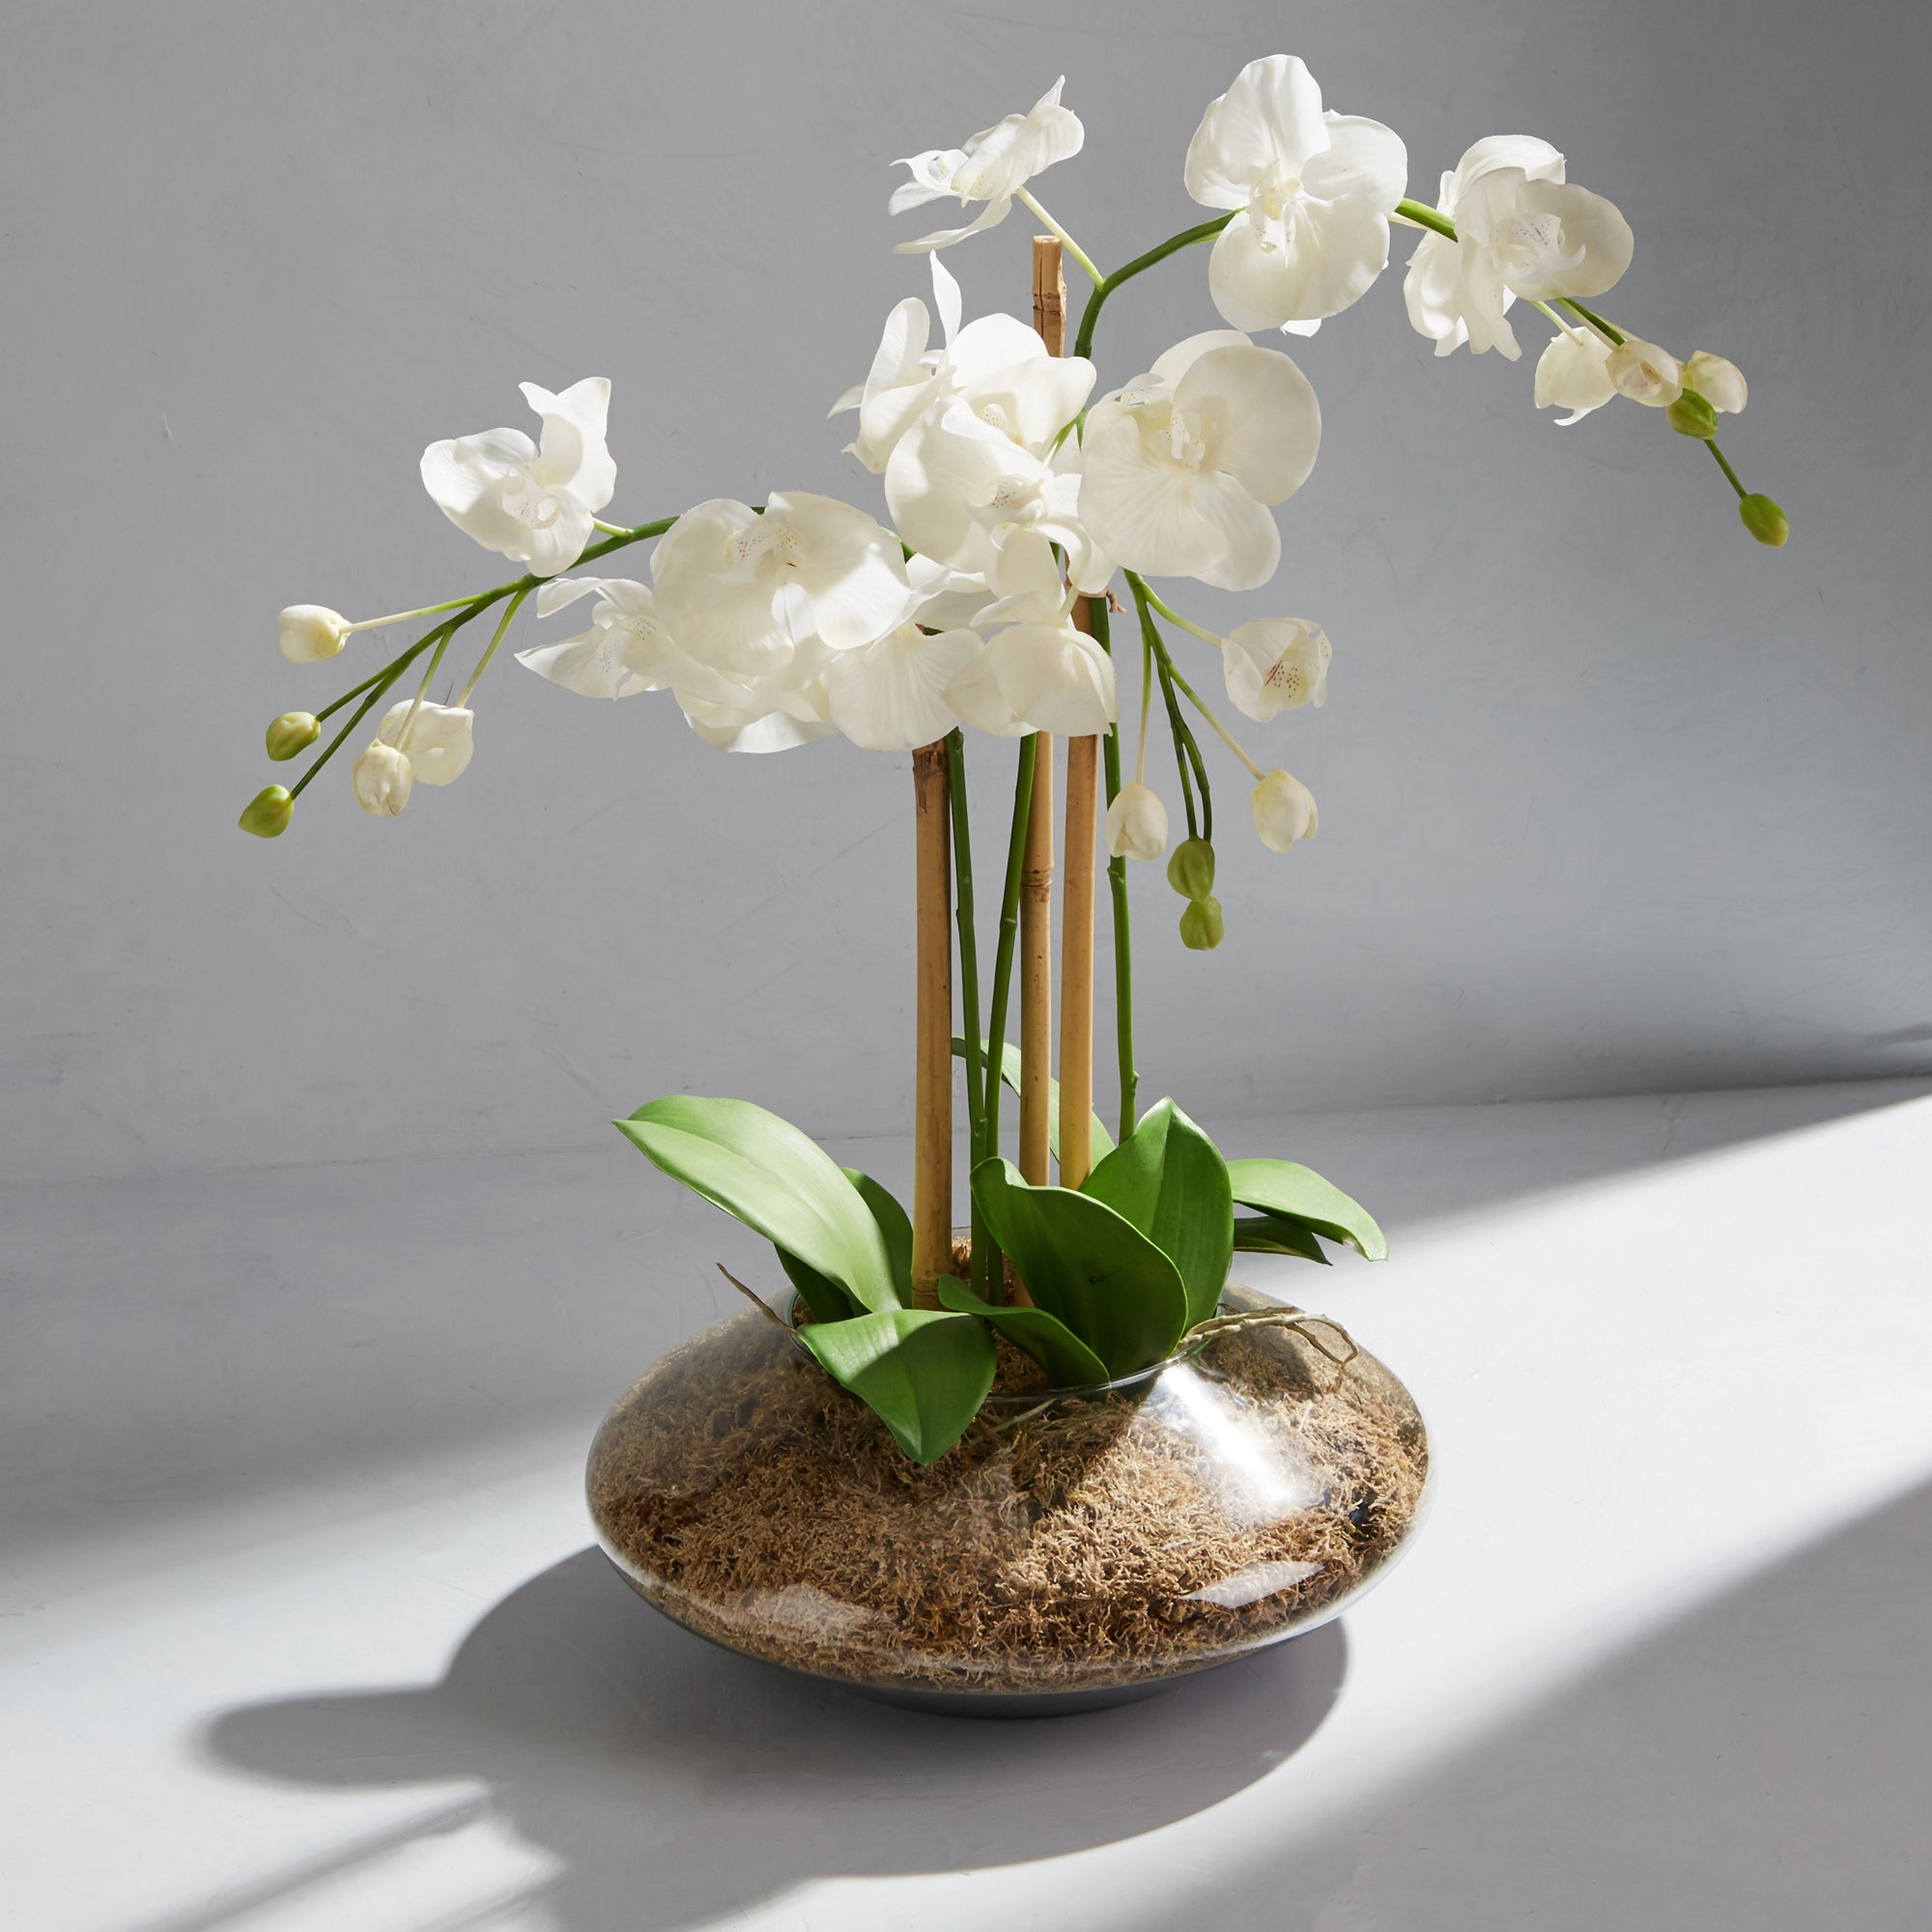 Dorma Large Orchid in Glass Bowl White